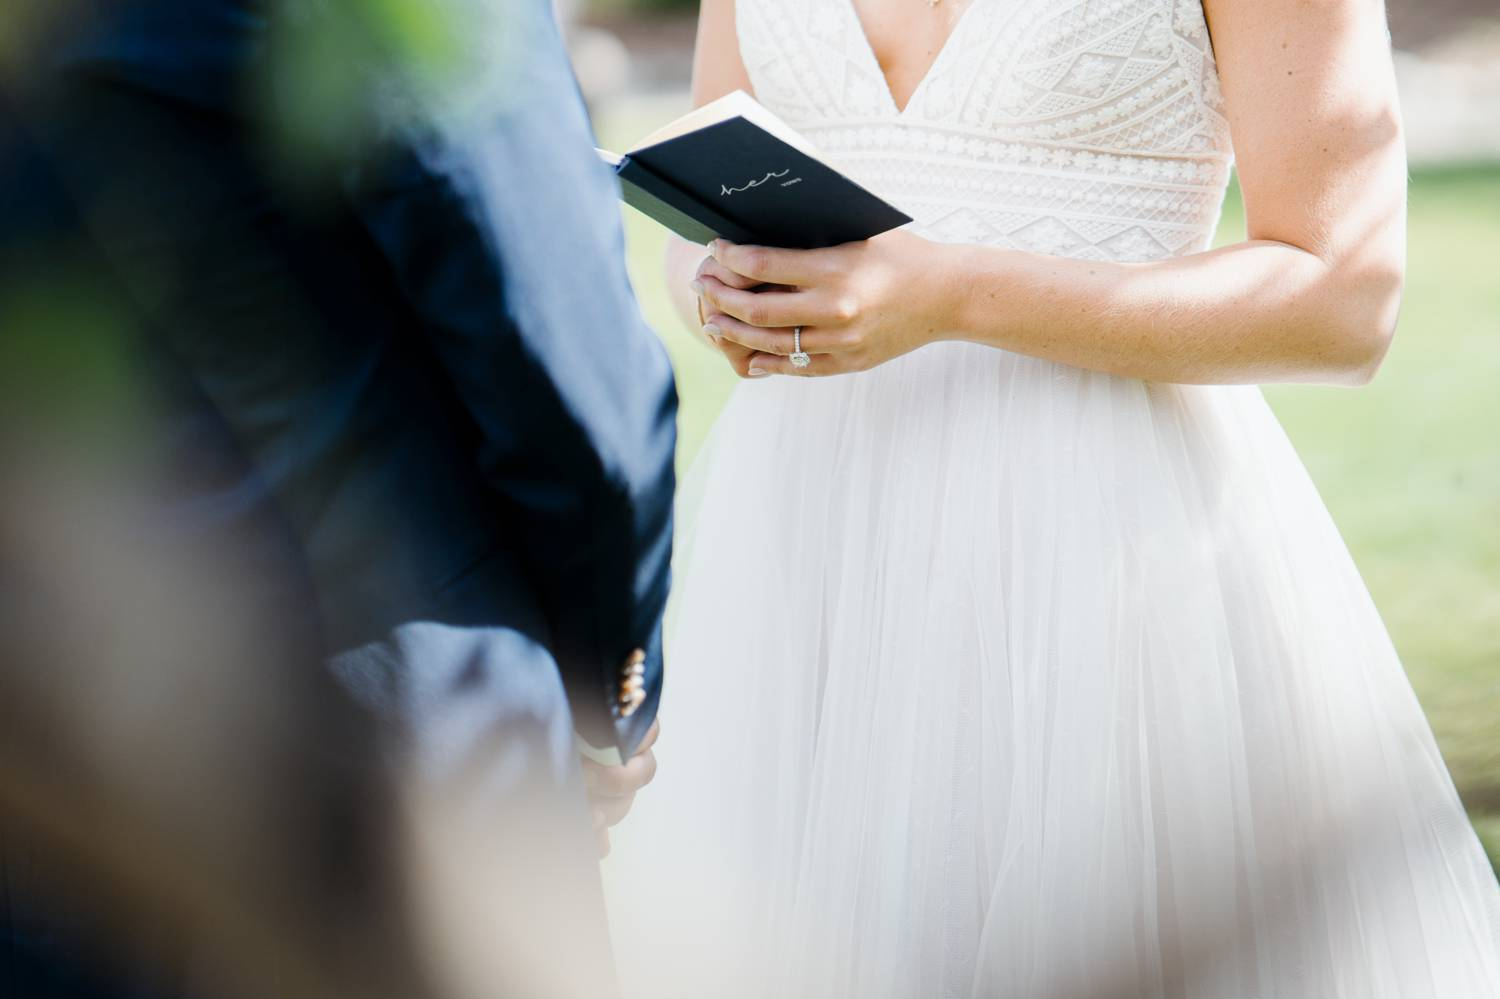 Customer Loyalty: By Nick Sparks, a mid-ceremony detail shot depicts a bride's hands holding her book of vows.